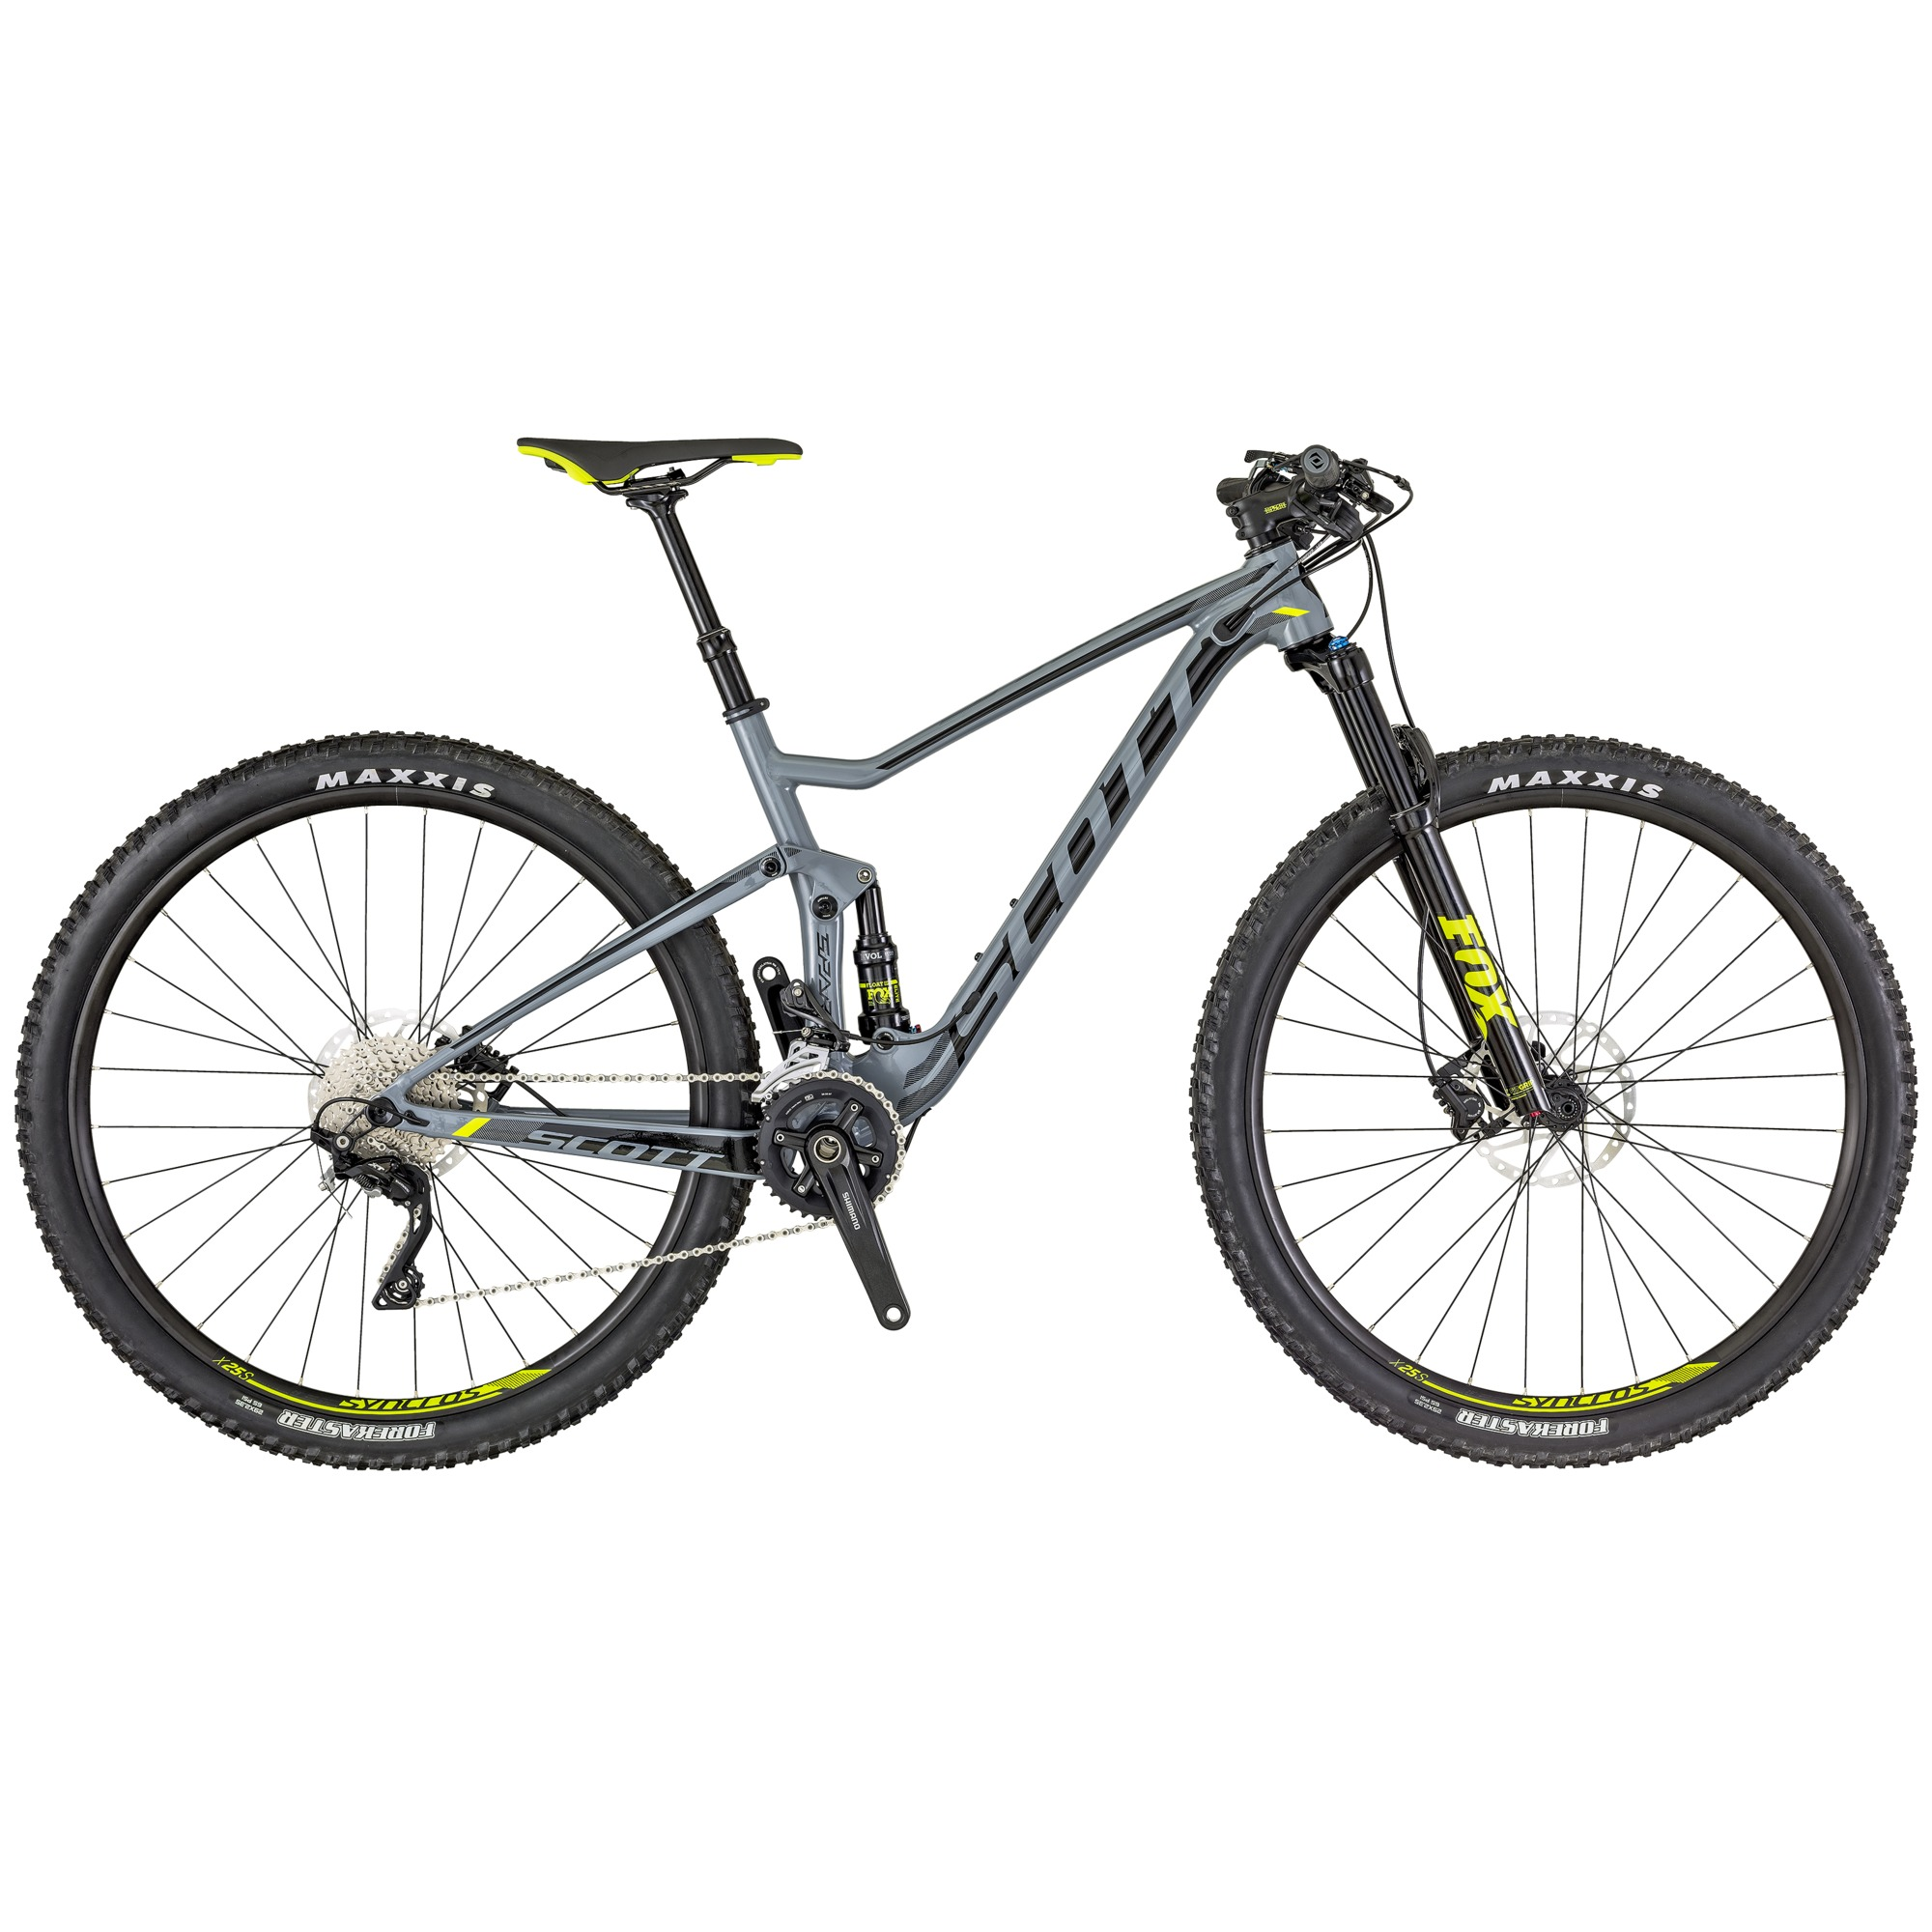 SCOTT Spark 950 Bike XL - Zweirad Homann